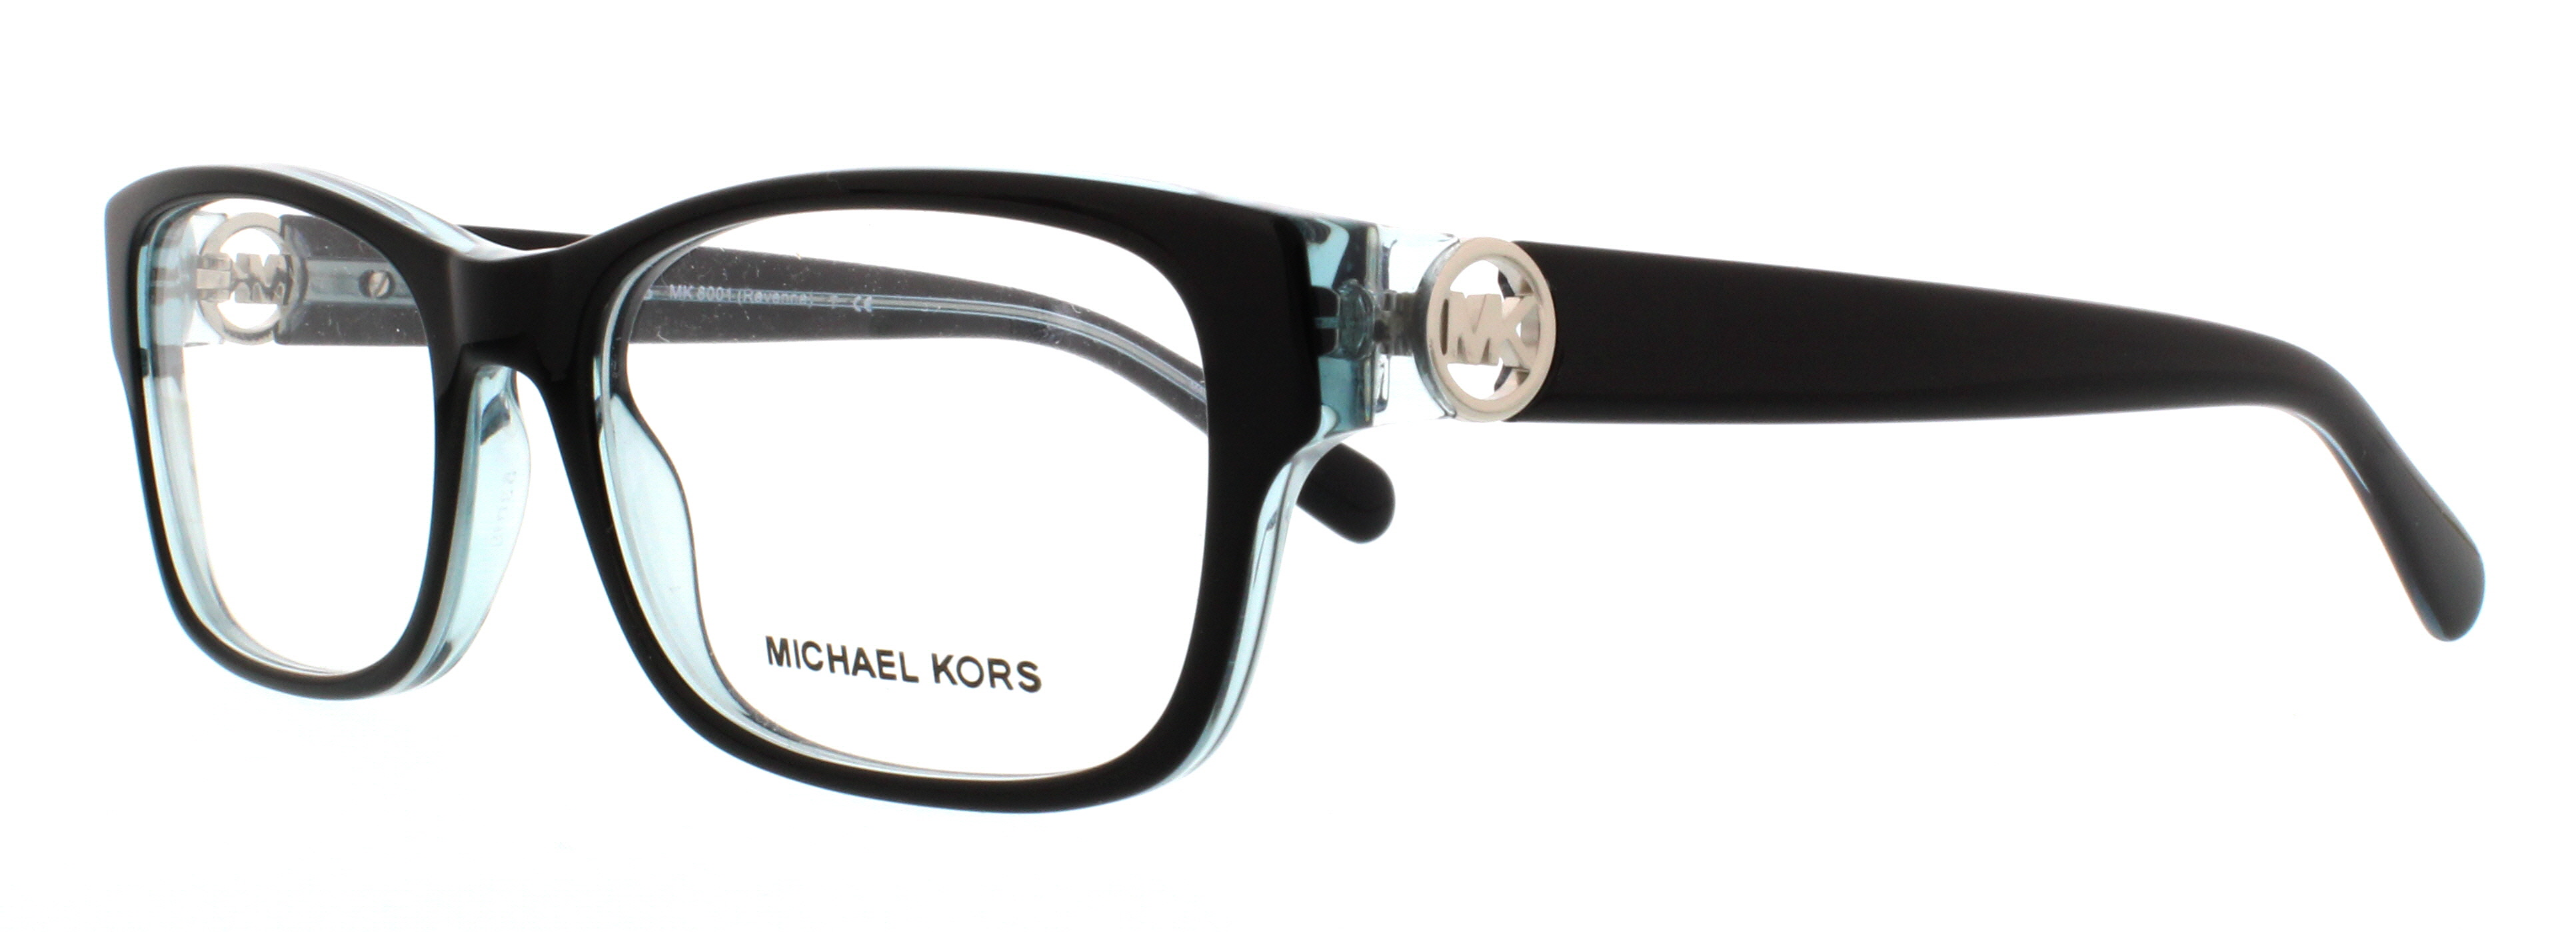 3001 black blue - Michael Kors Frames